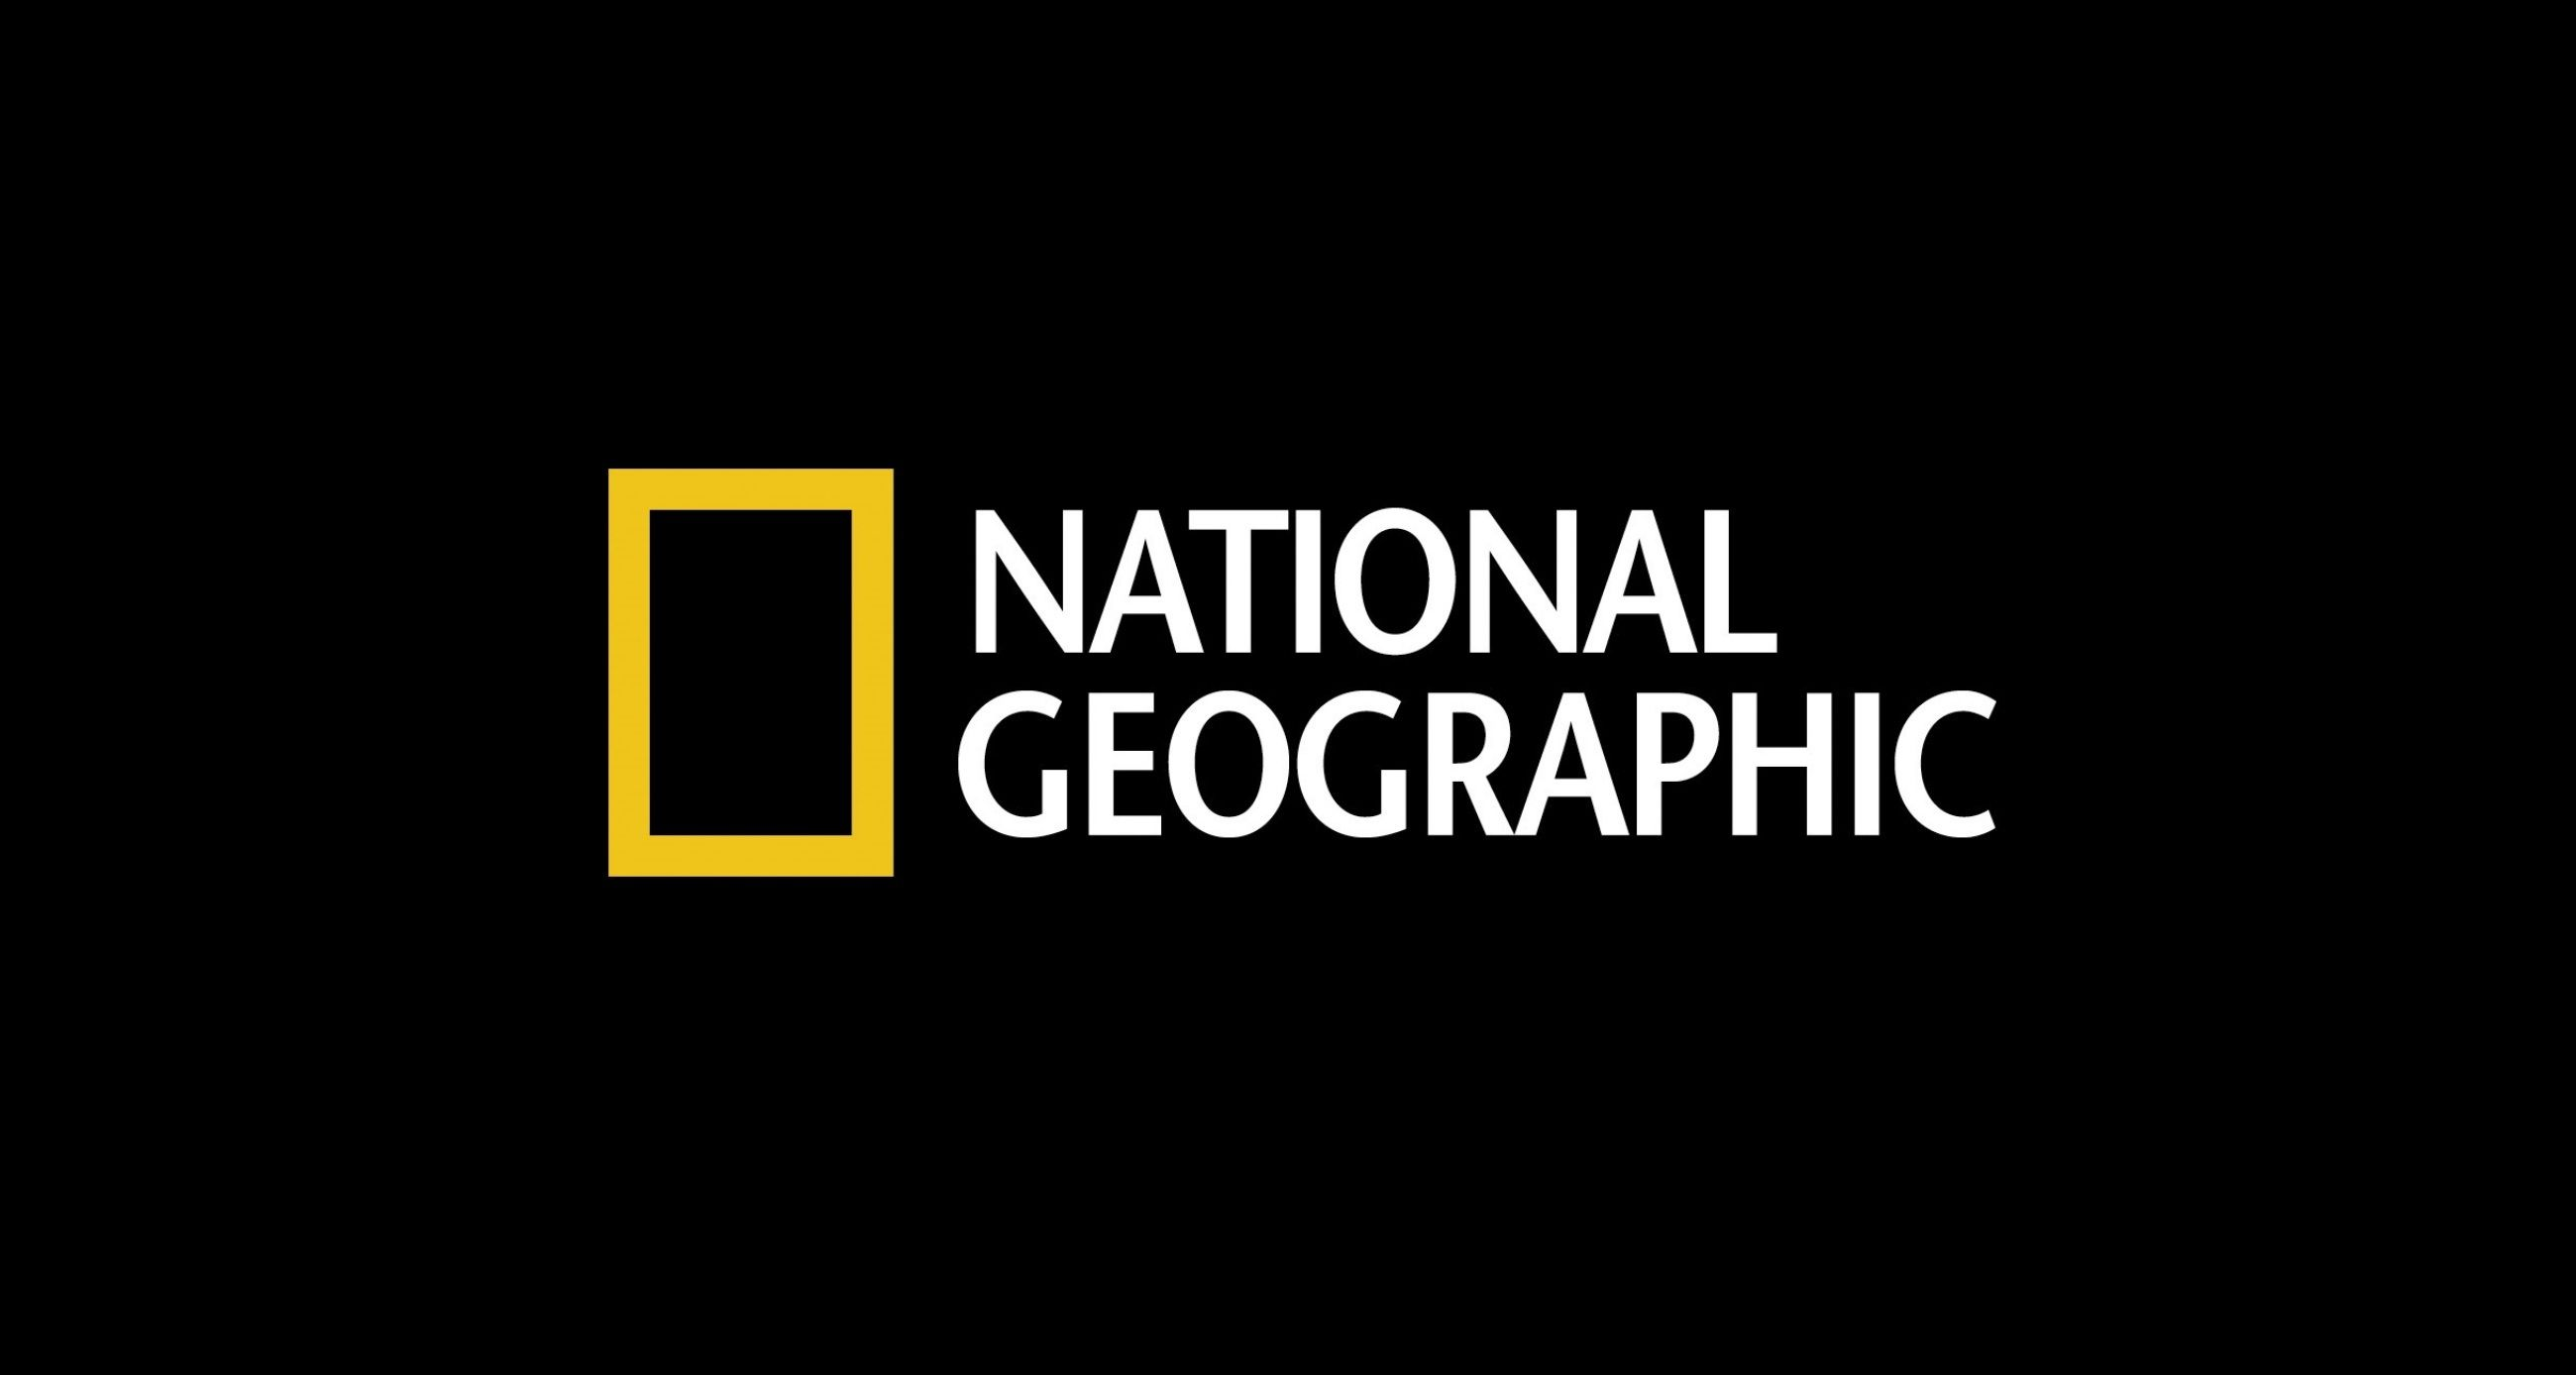 National Geographic Logo HD Wallpaper (With images